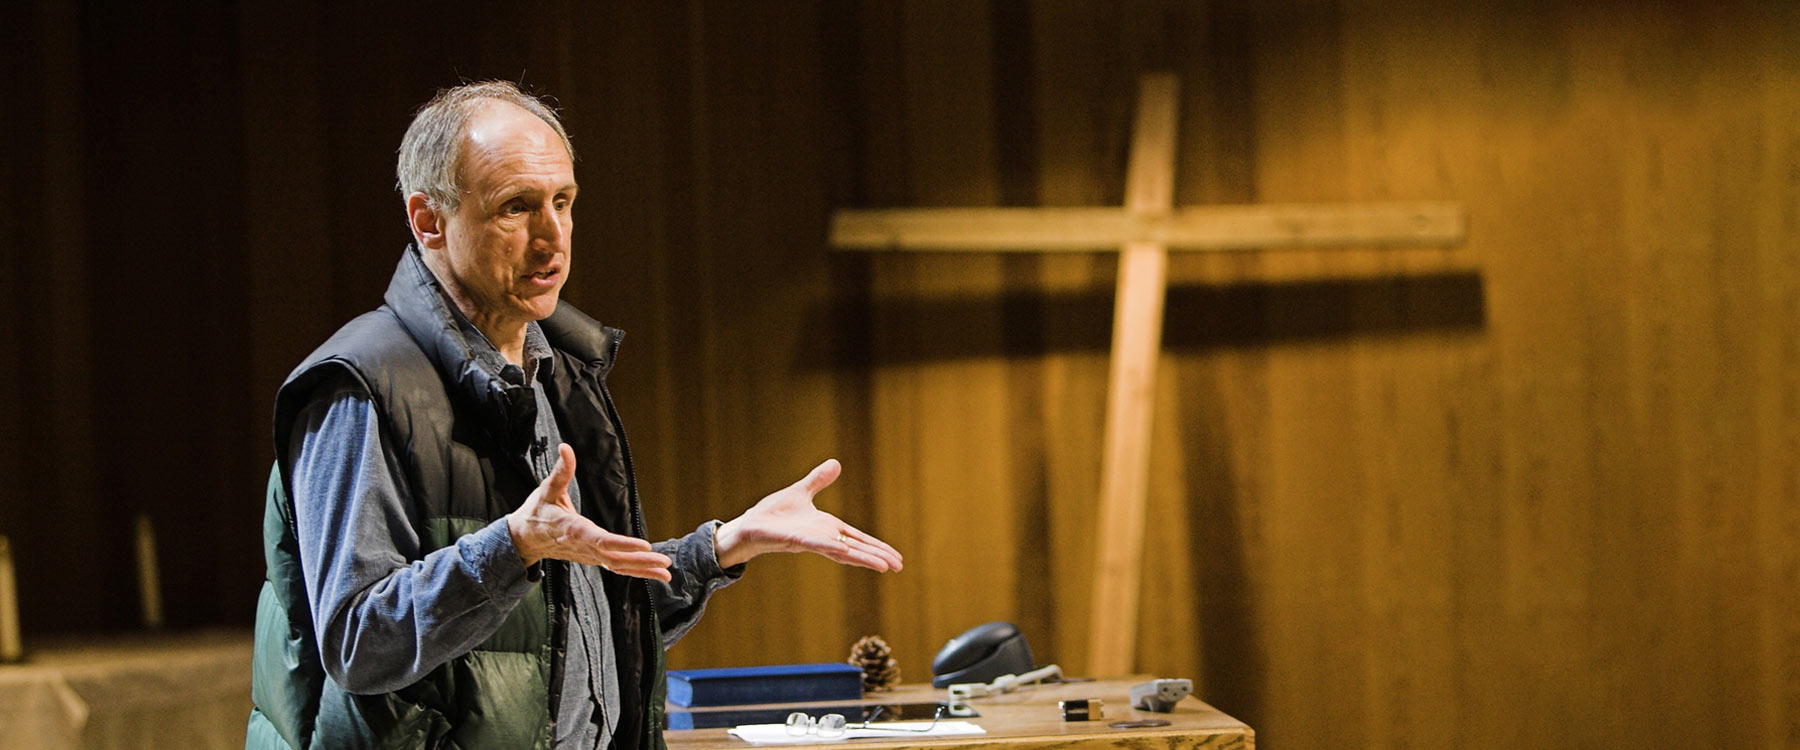 Professor Jerry Sittser gestures with outstretched hands as he presents a theology lecture in the chapel.